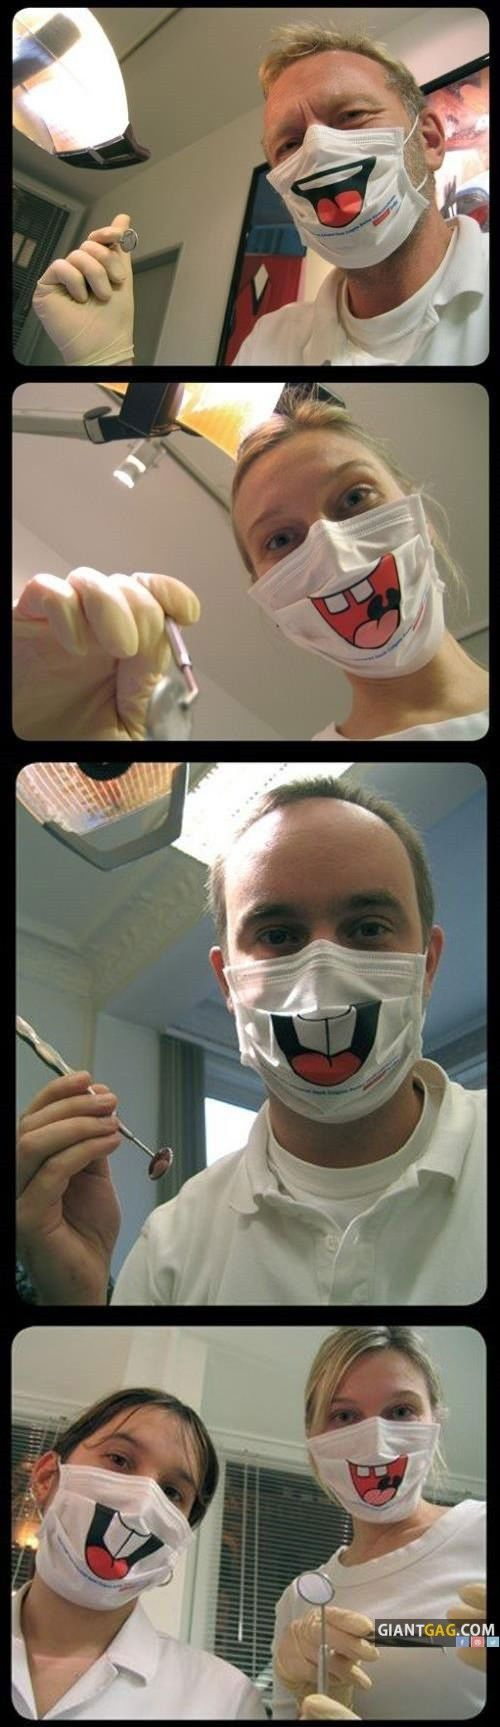 Dentists Smile Face Masks,  Click the link to view today's funniest pictures!